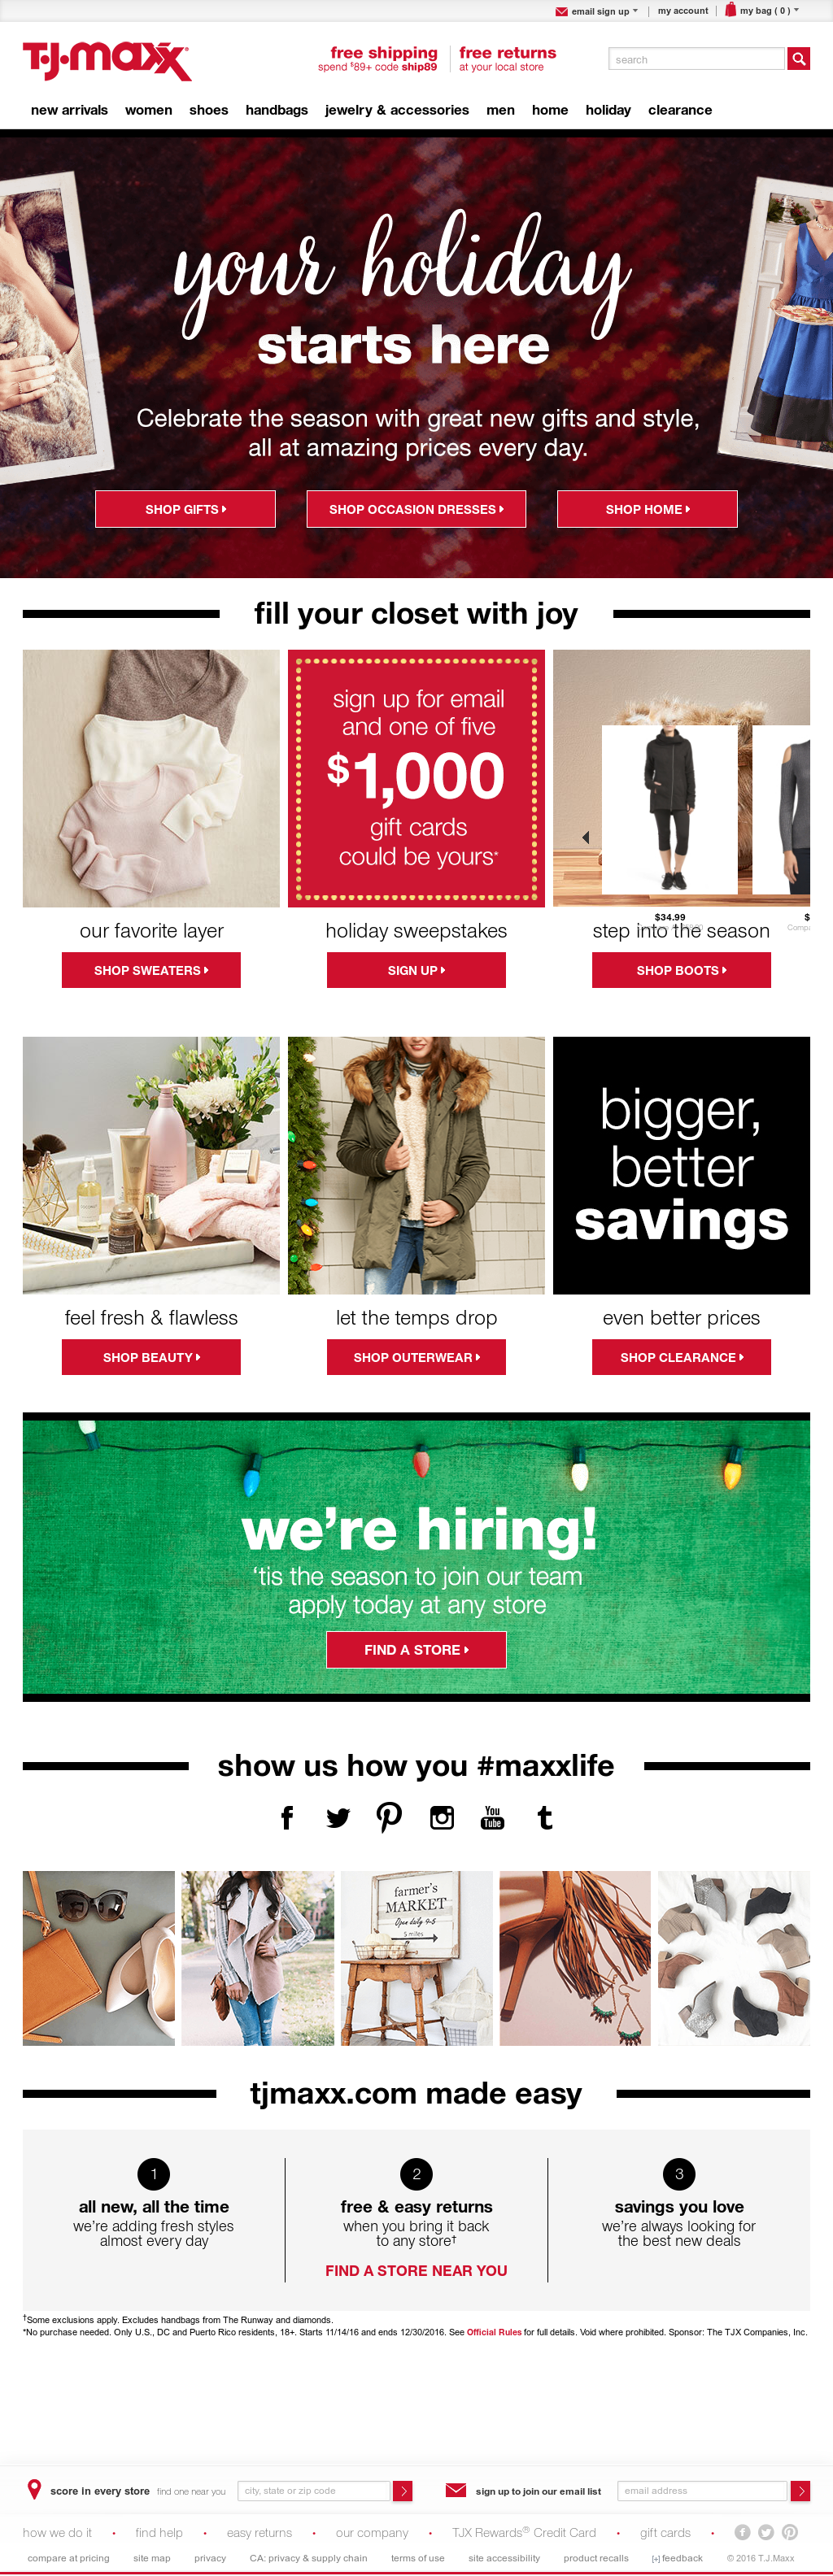 T J  Maxx Competitors, Revenue and Employees - Owler Company Profile